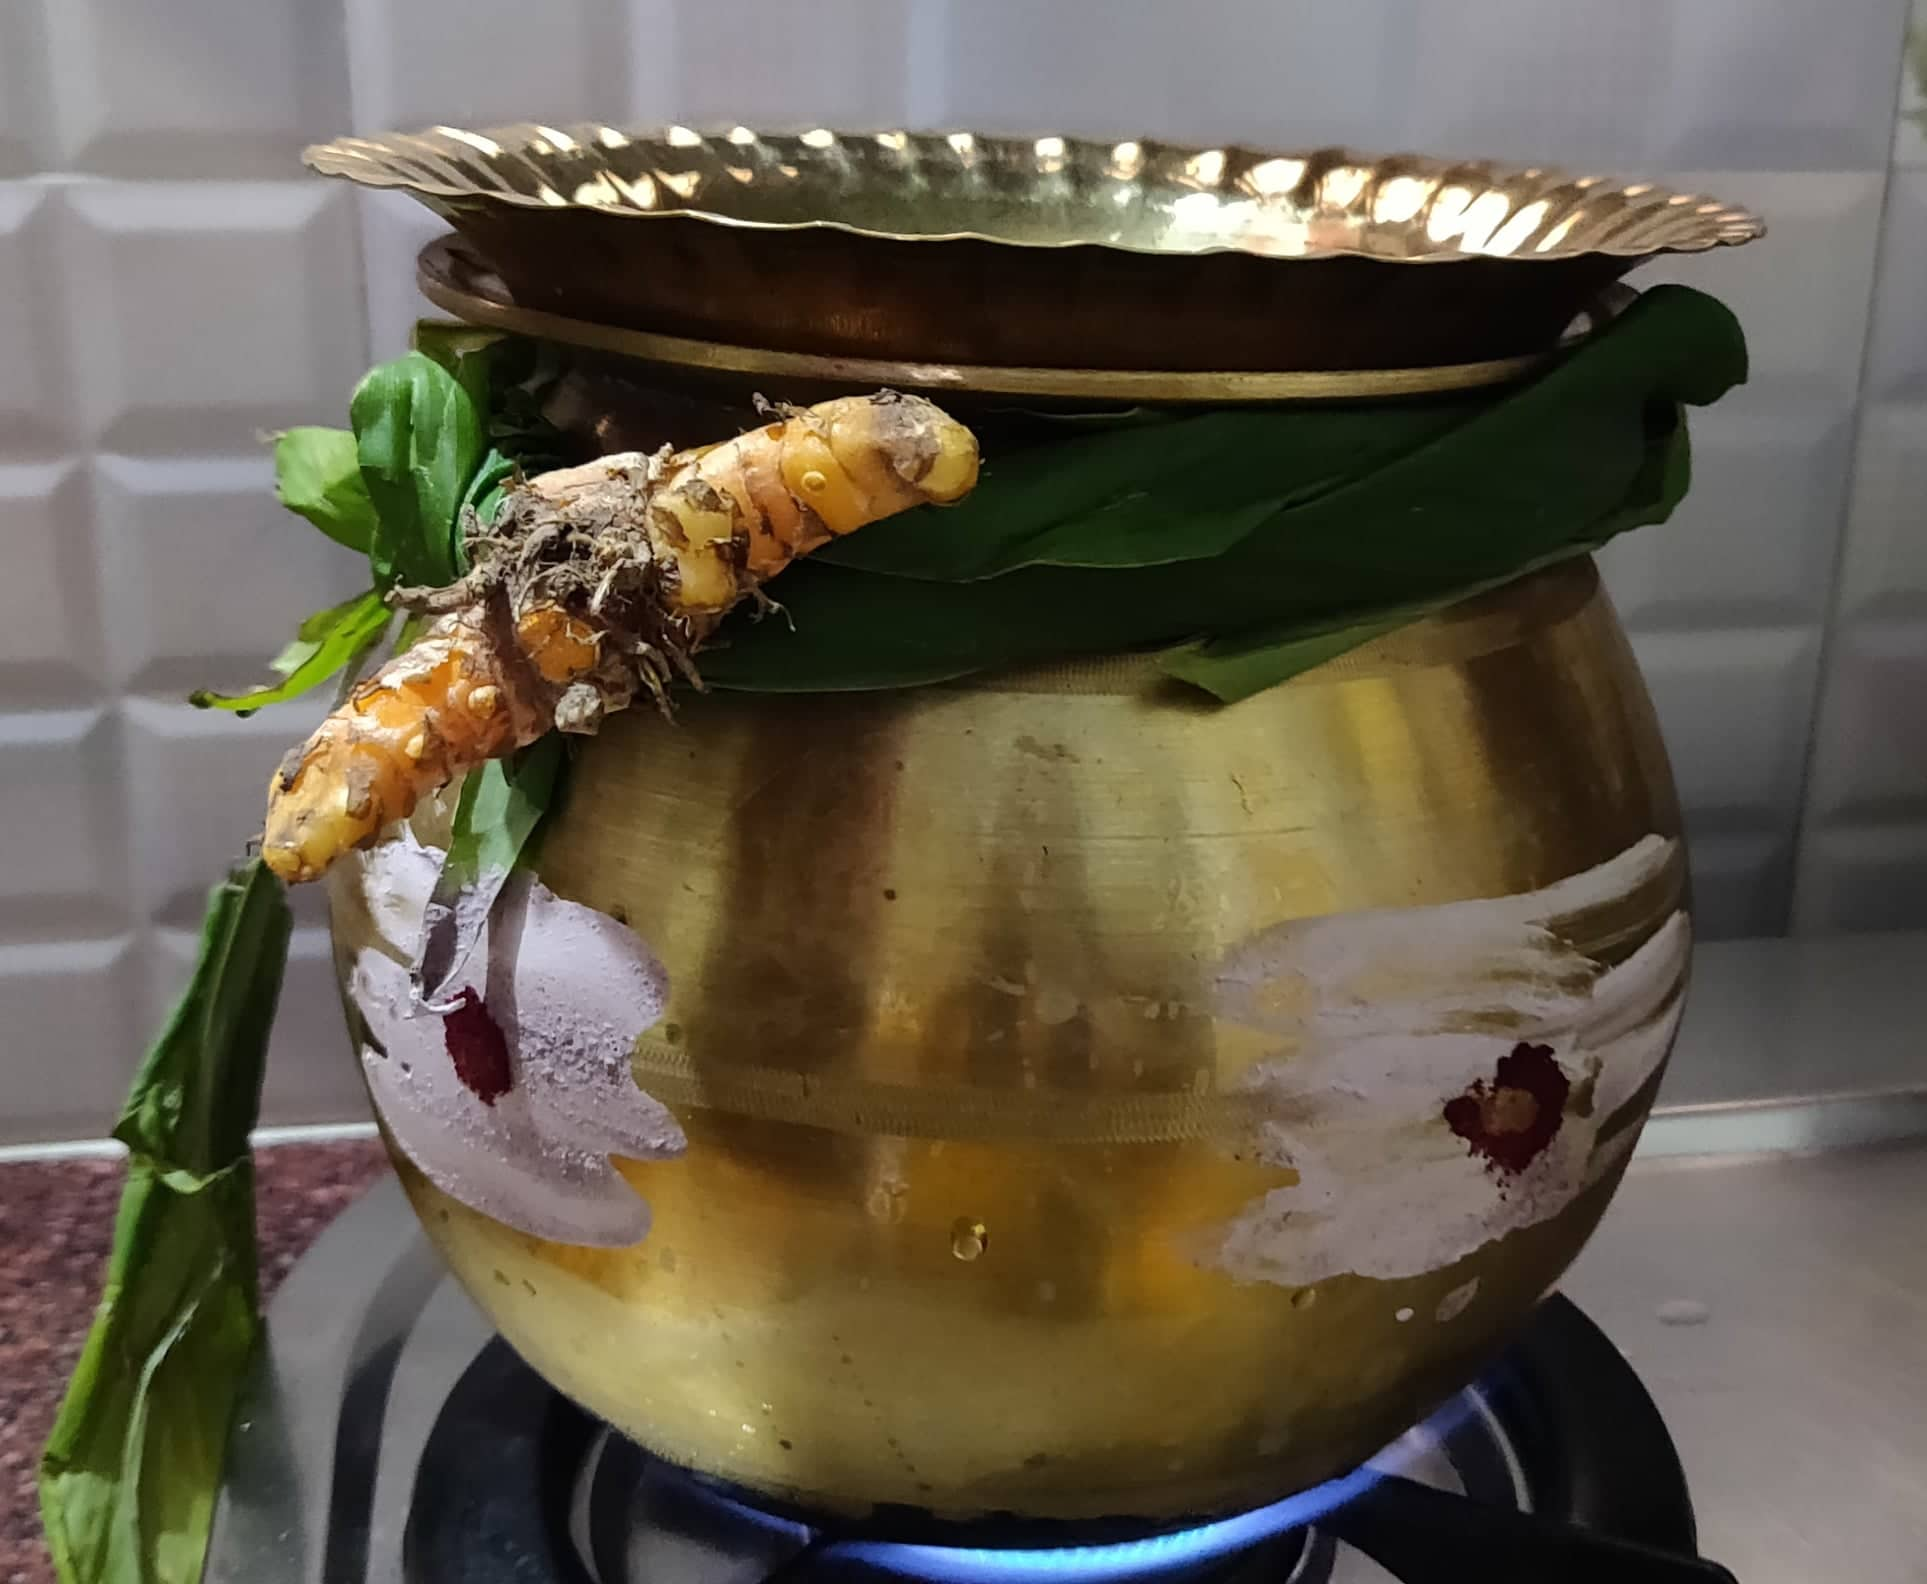 sakkarai_pongal_in_brass_pot - 137061256_266658091577639_8722438161887912571_n